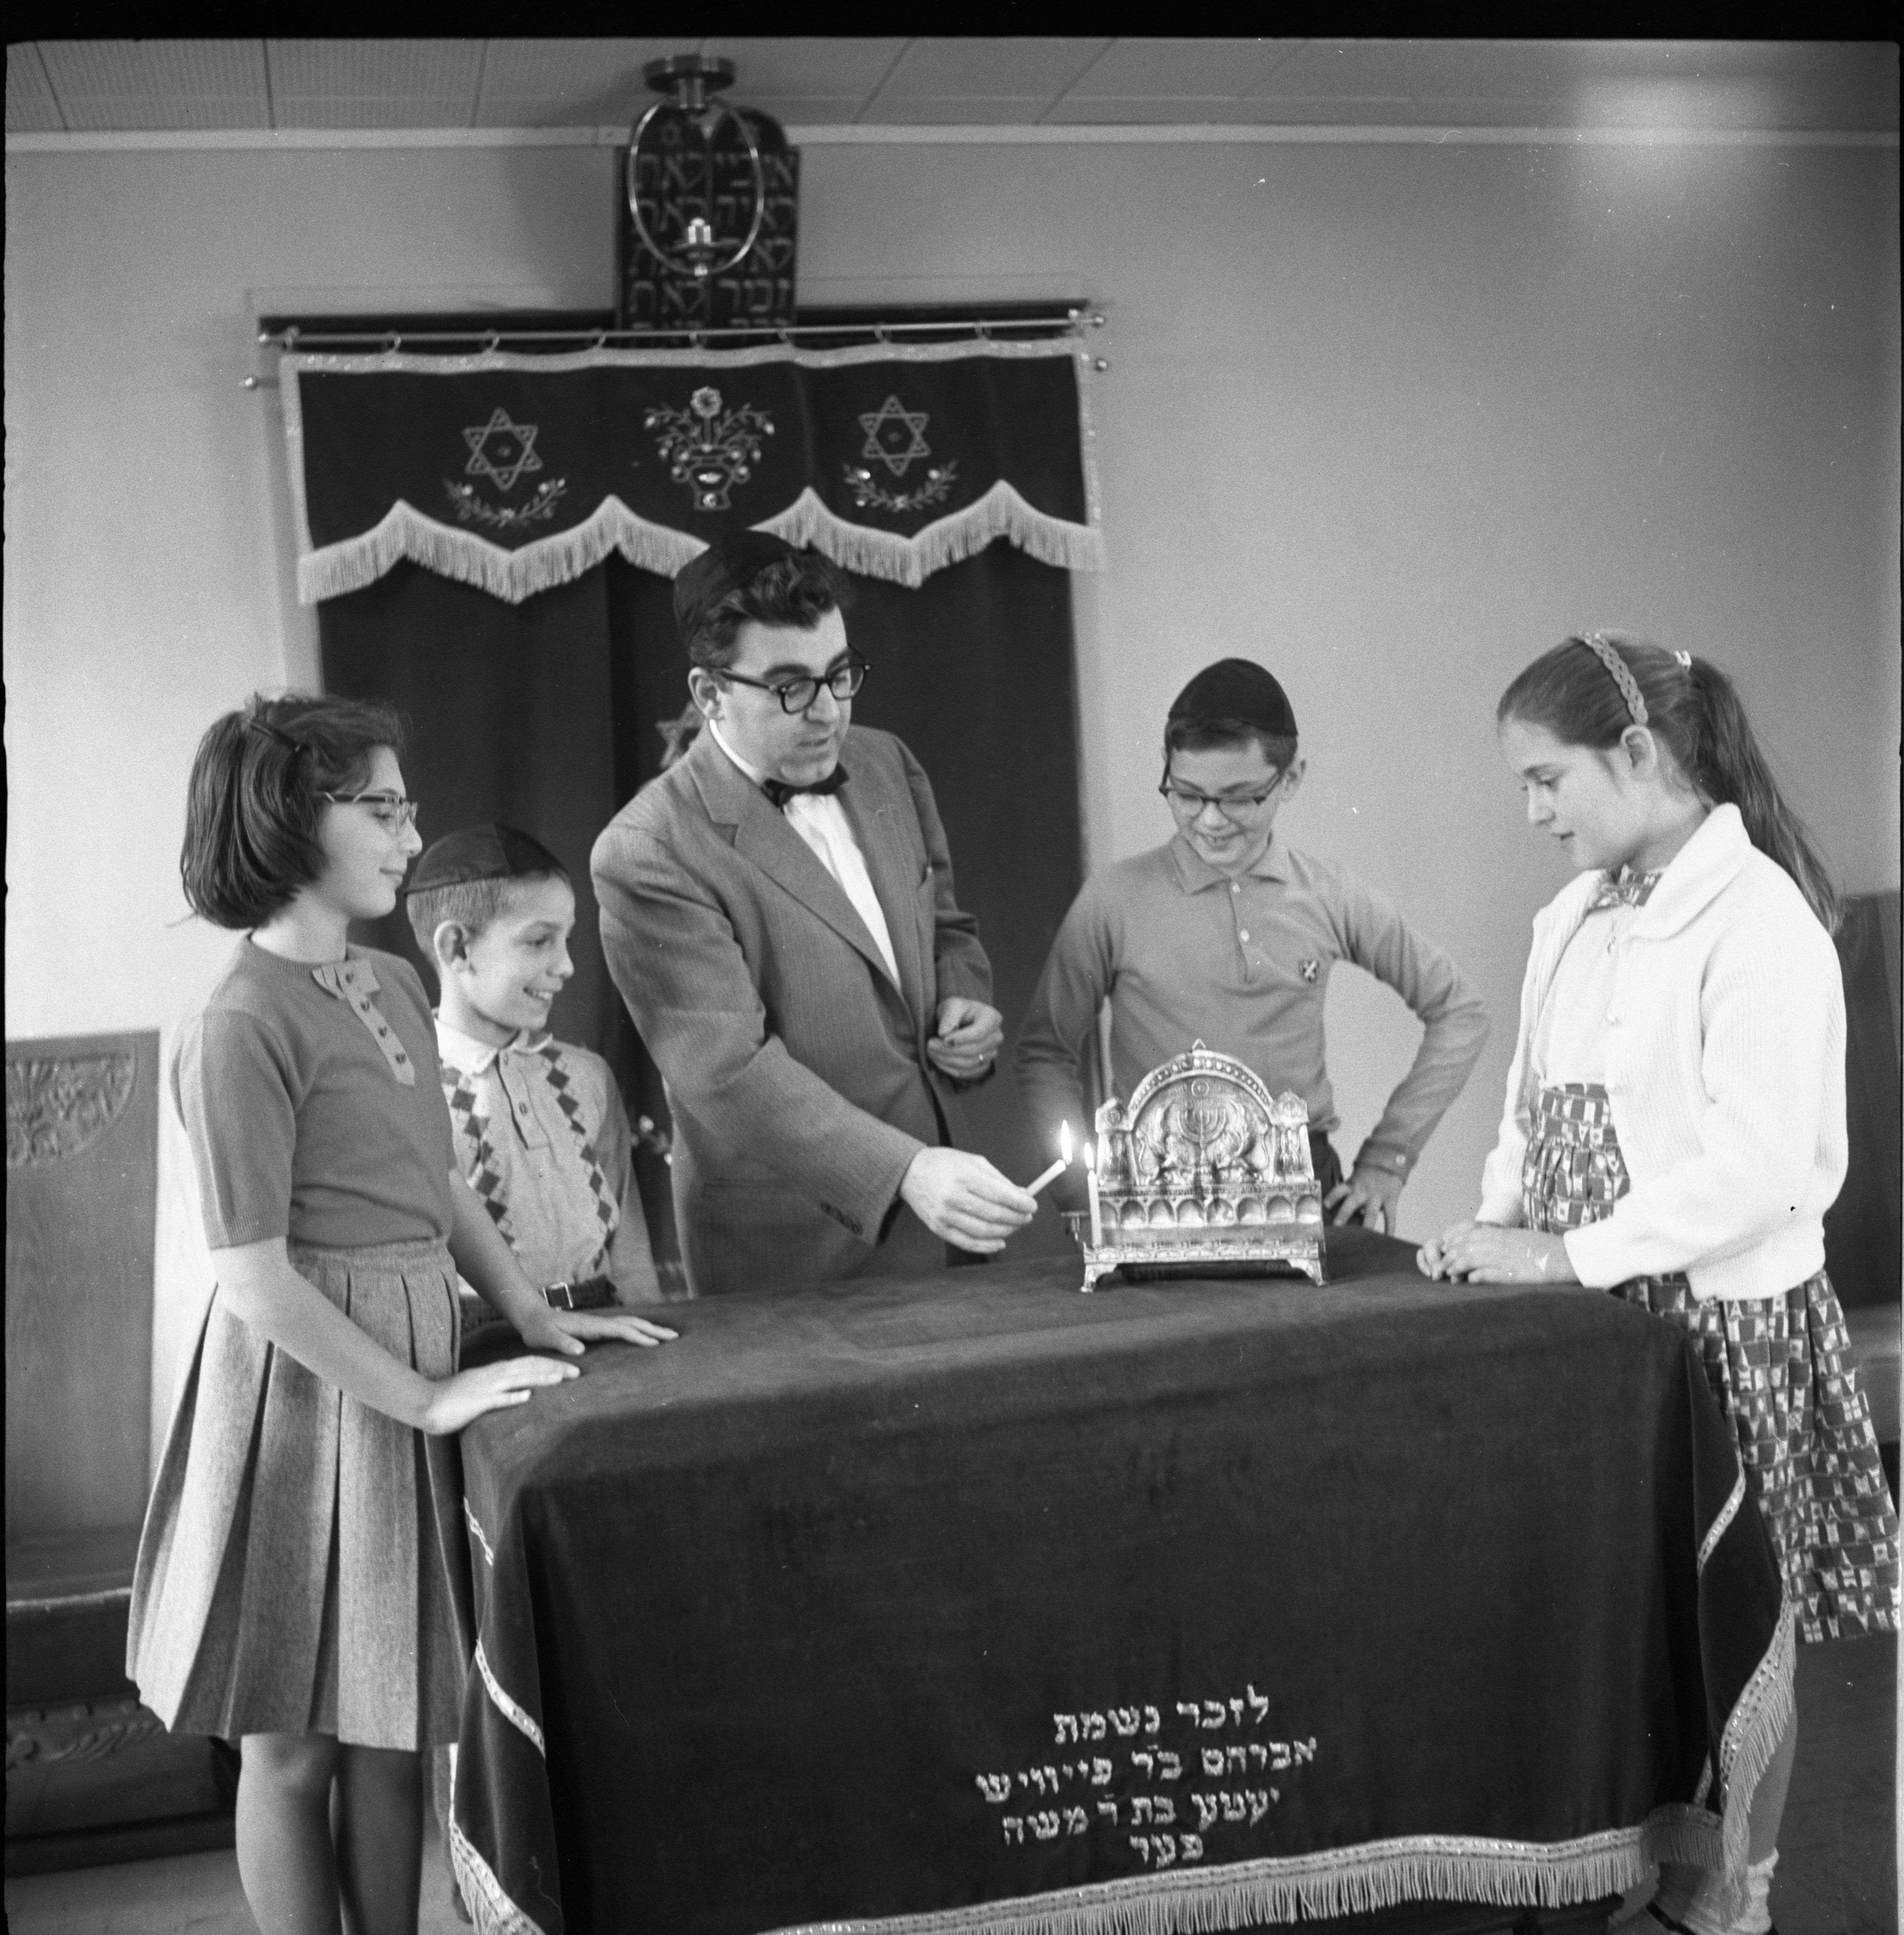 Rabbi Julius Weinberg Lights The First Candle For Hanukkah With Children Watching, December 1960 image